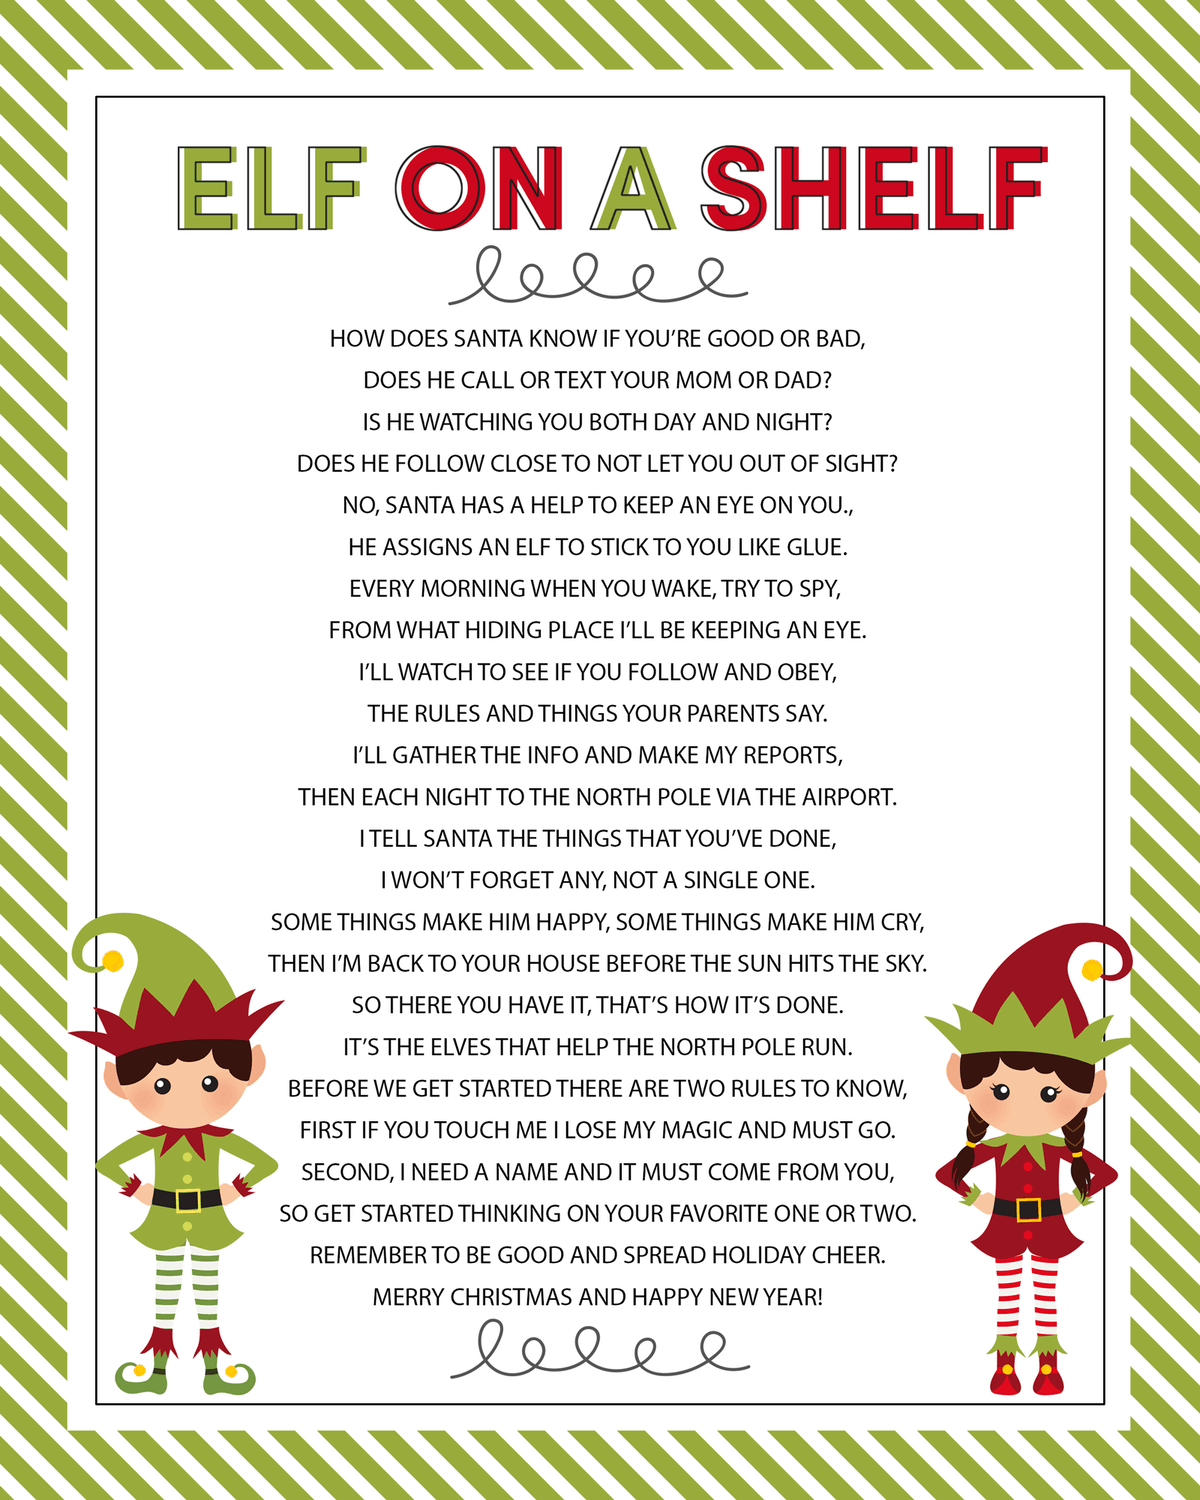 Elf On The Shelf Arrival Letter Poem